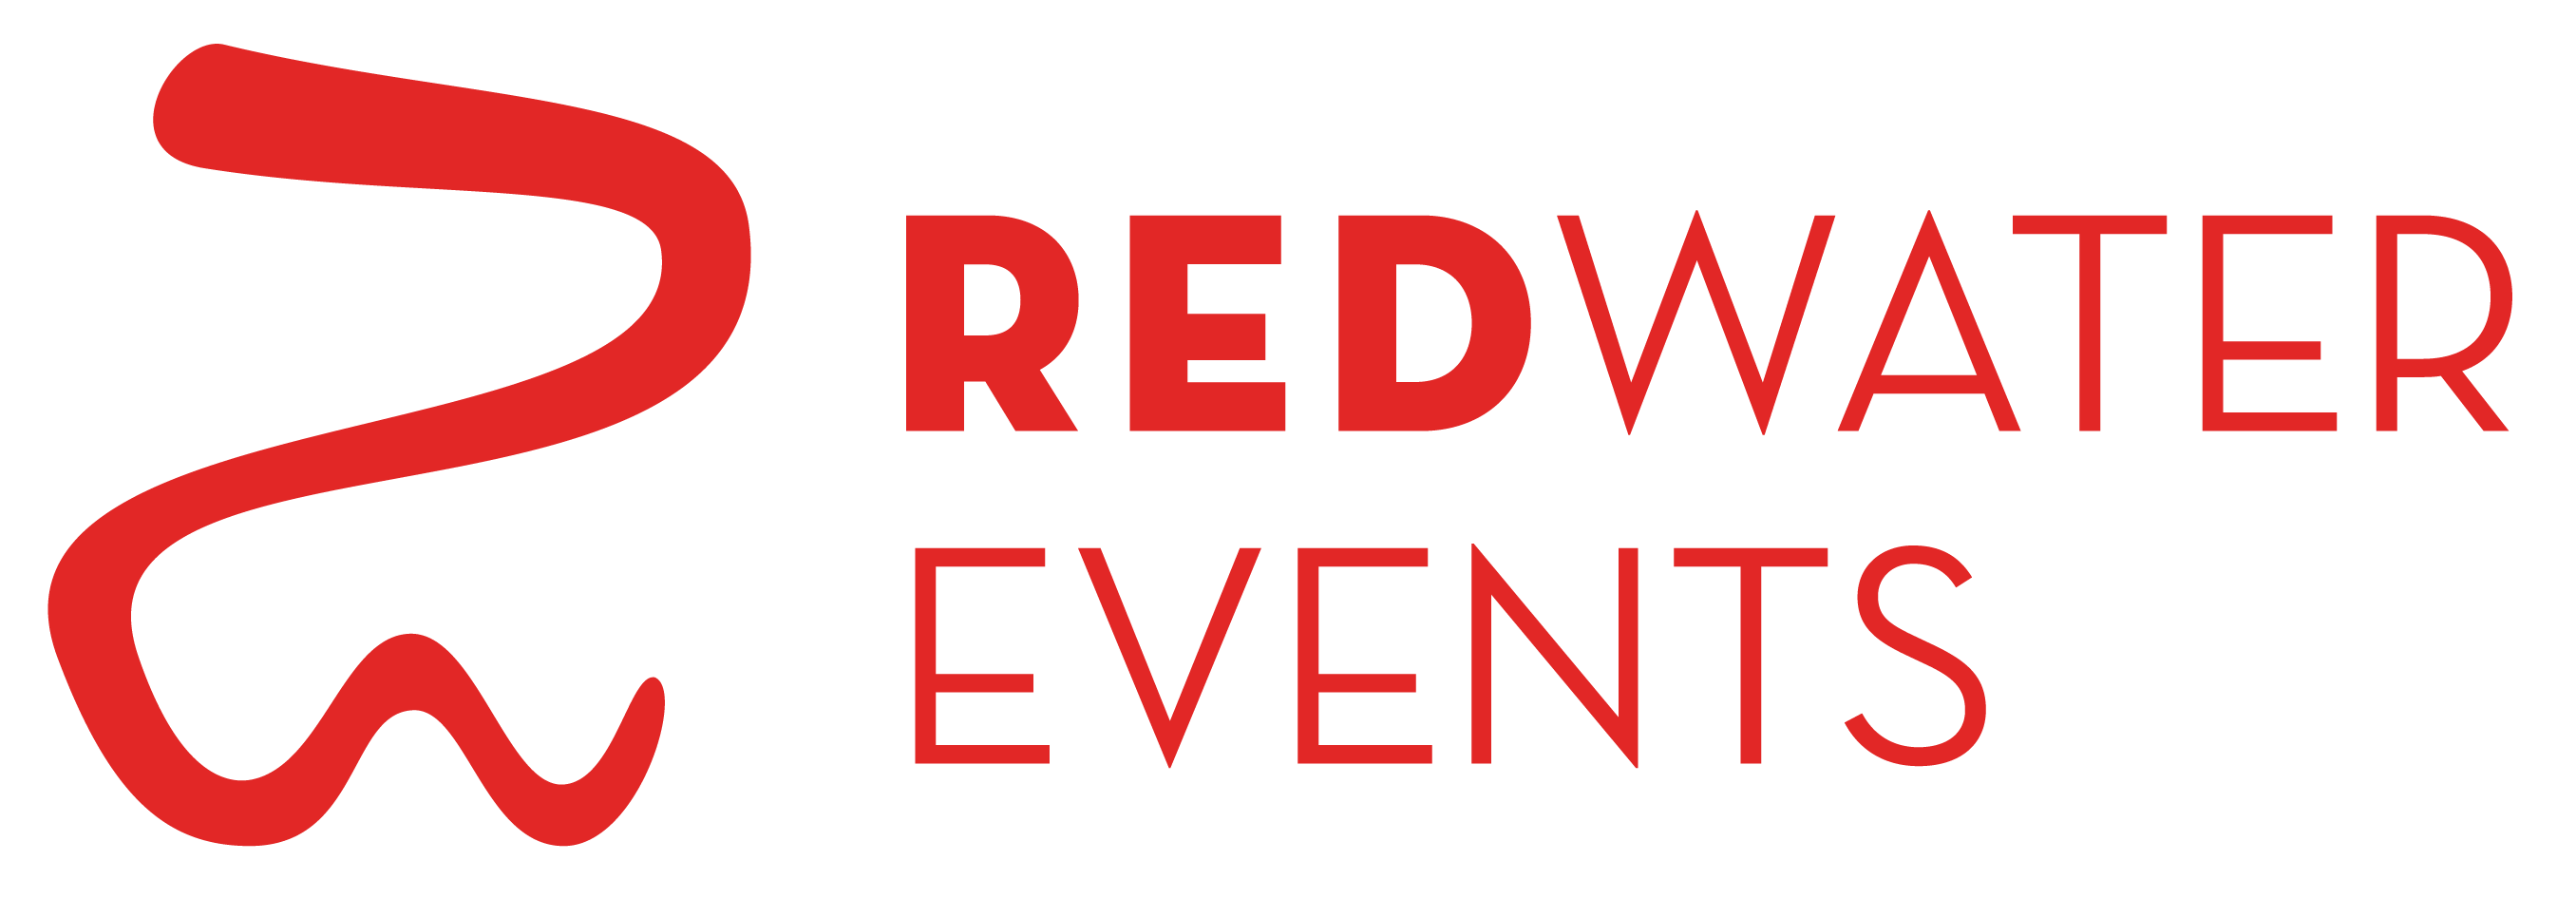 Redwater Events Logo